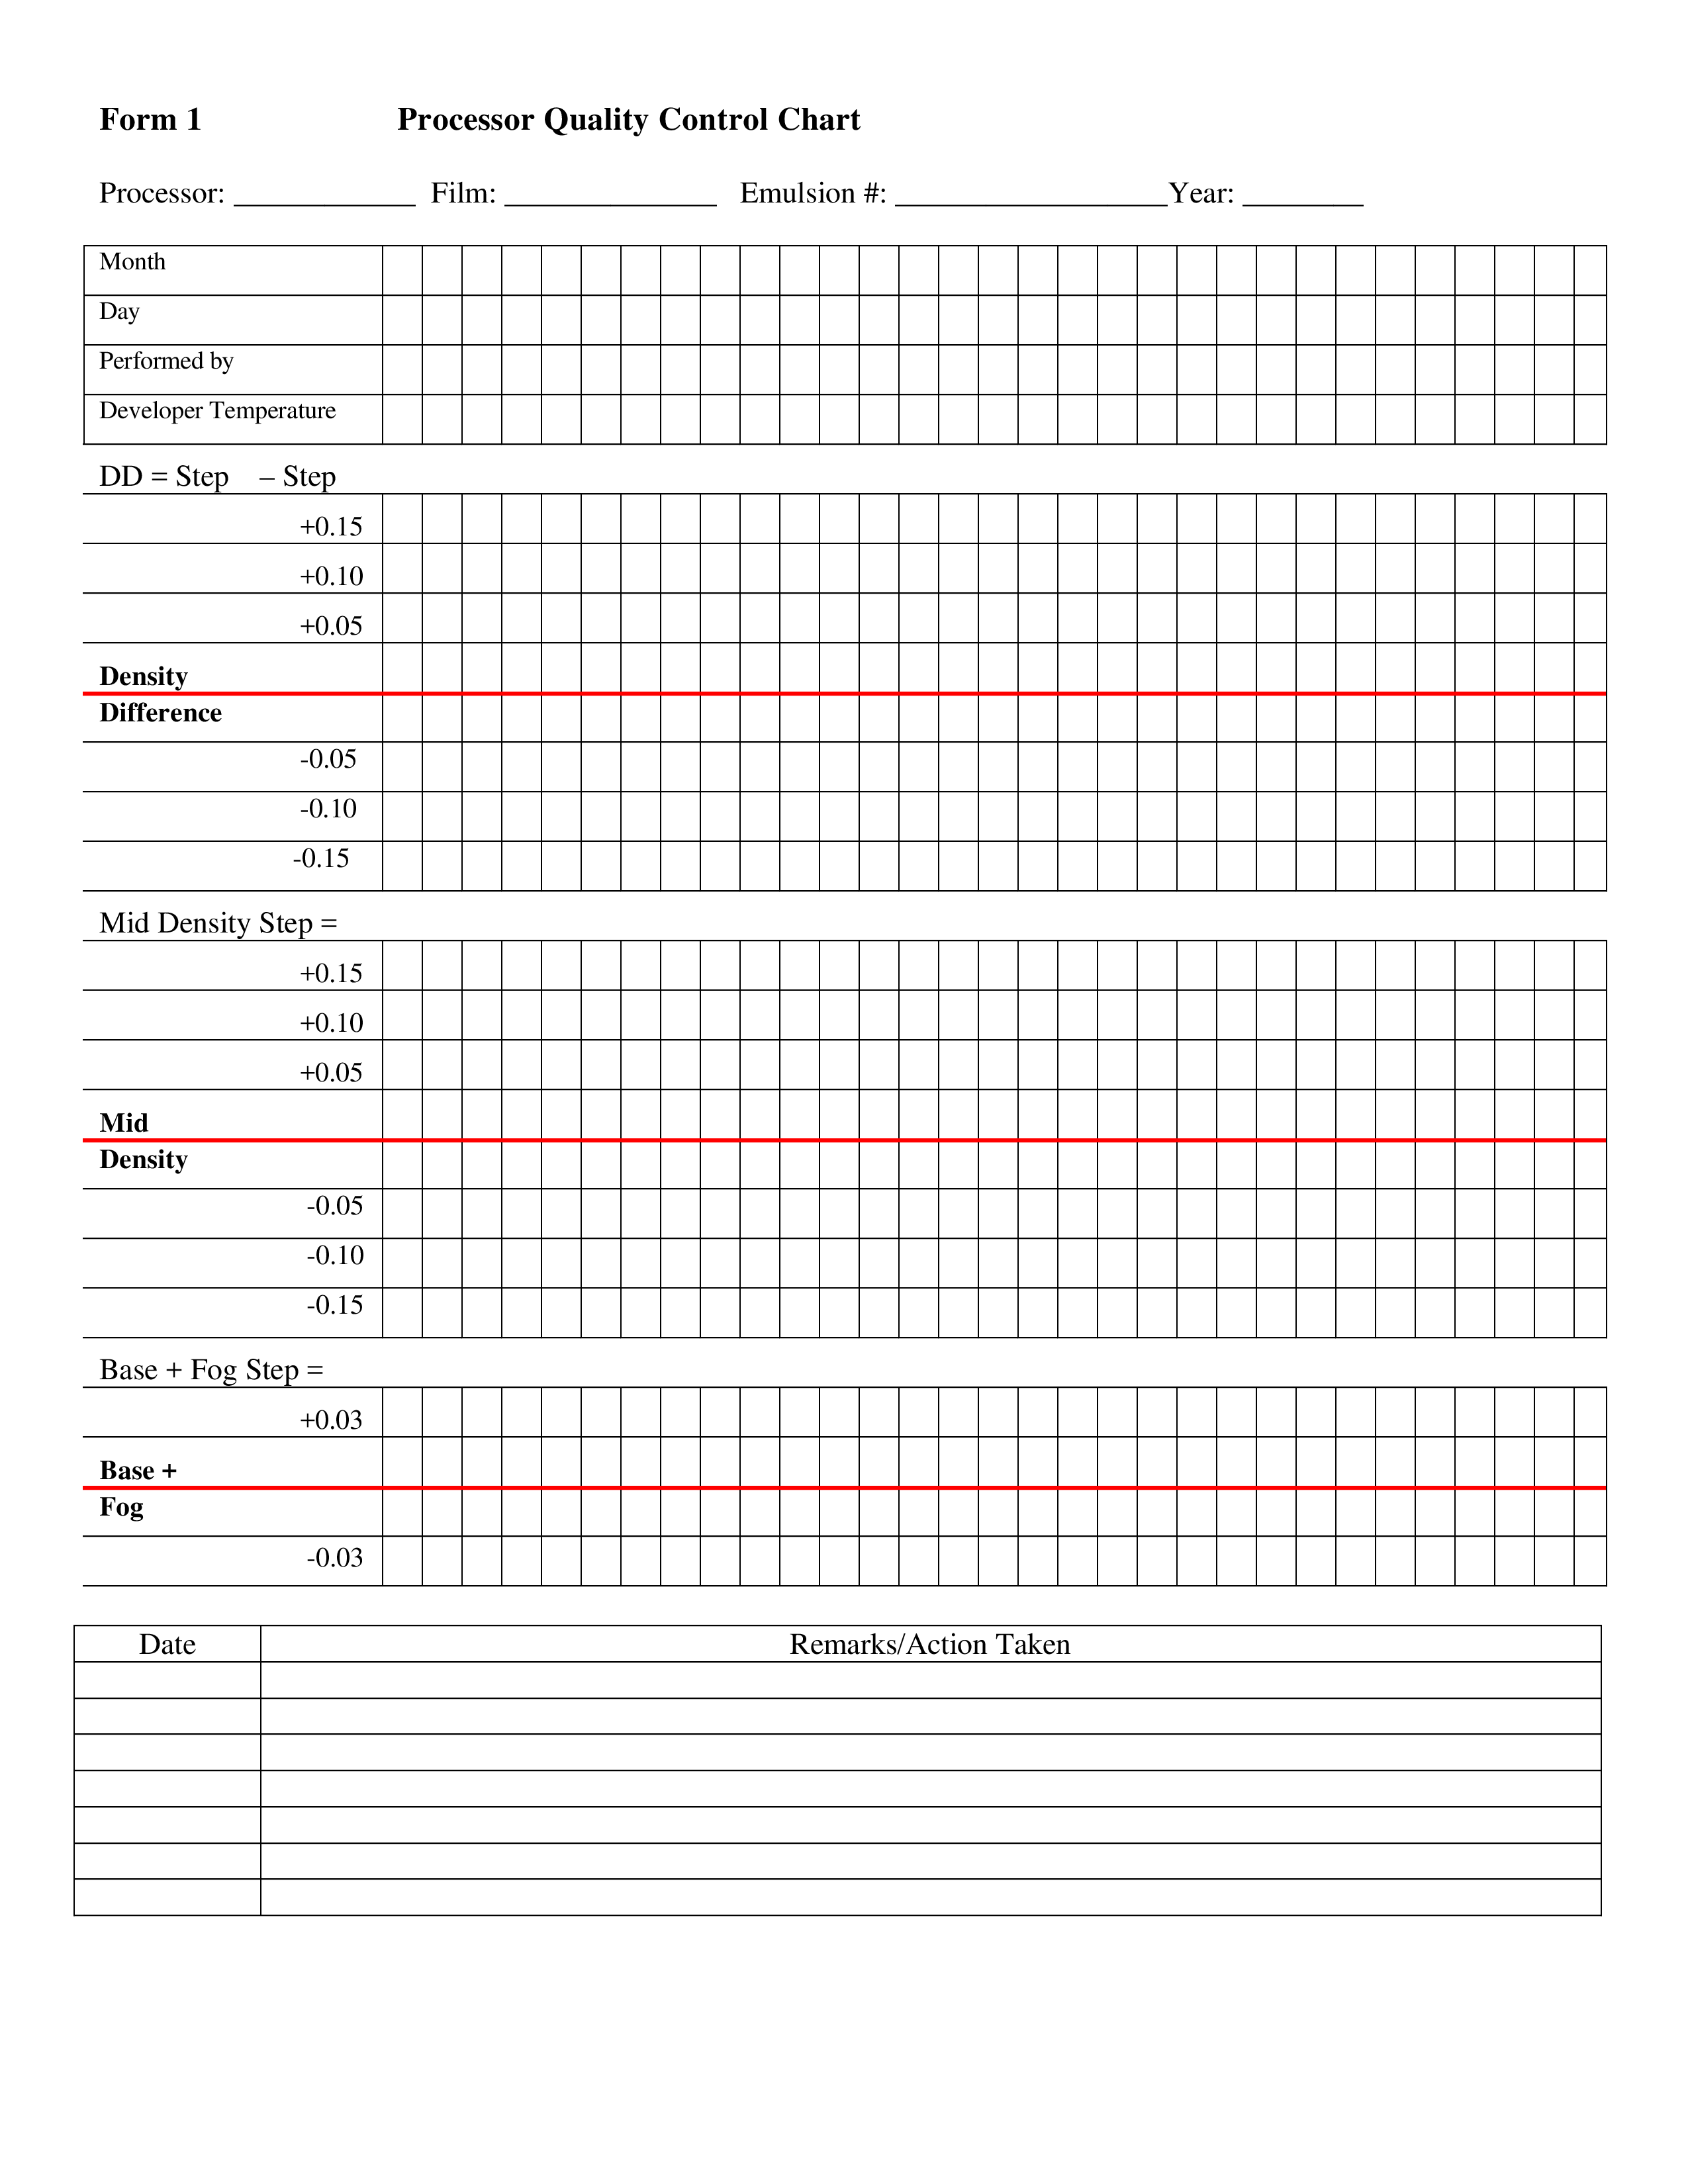 Blank Control Chart main image